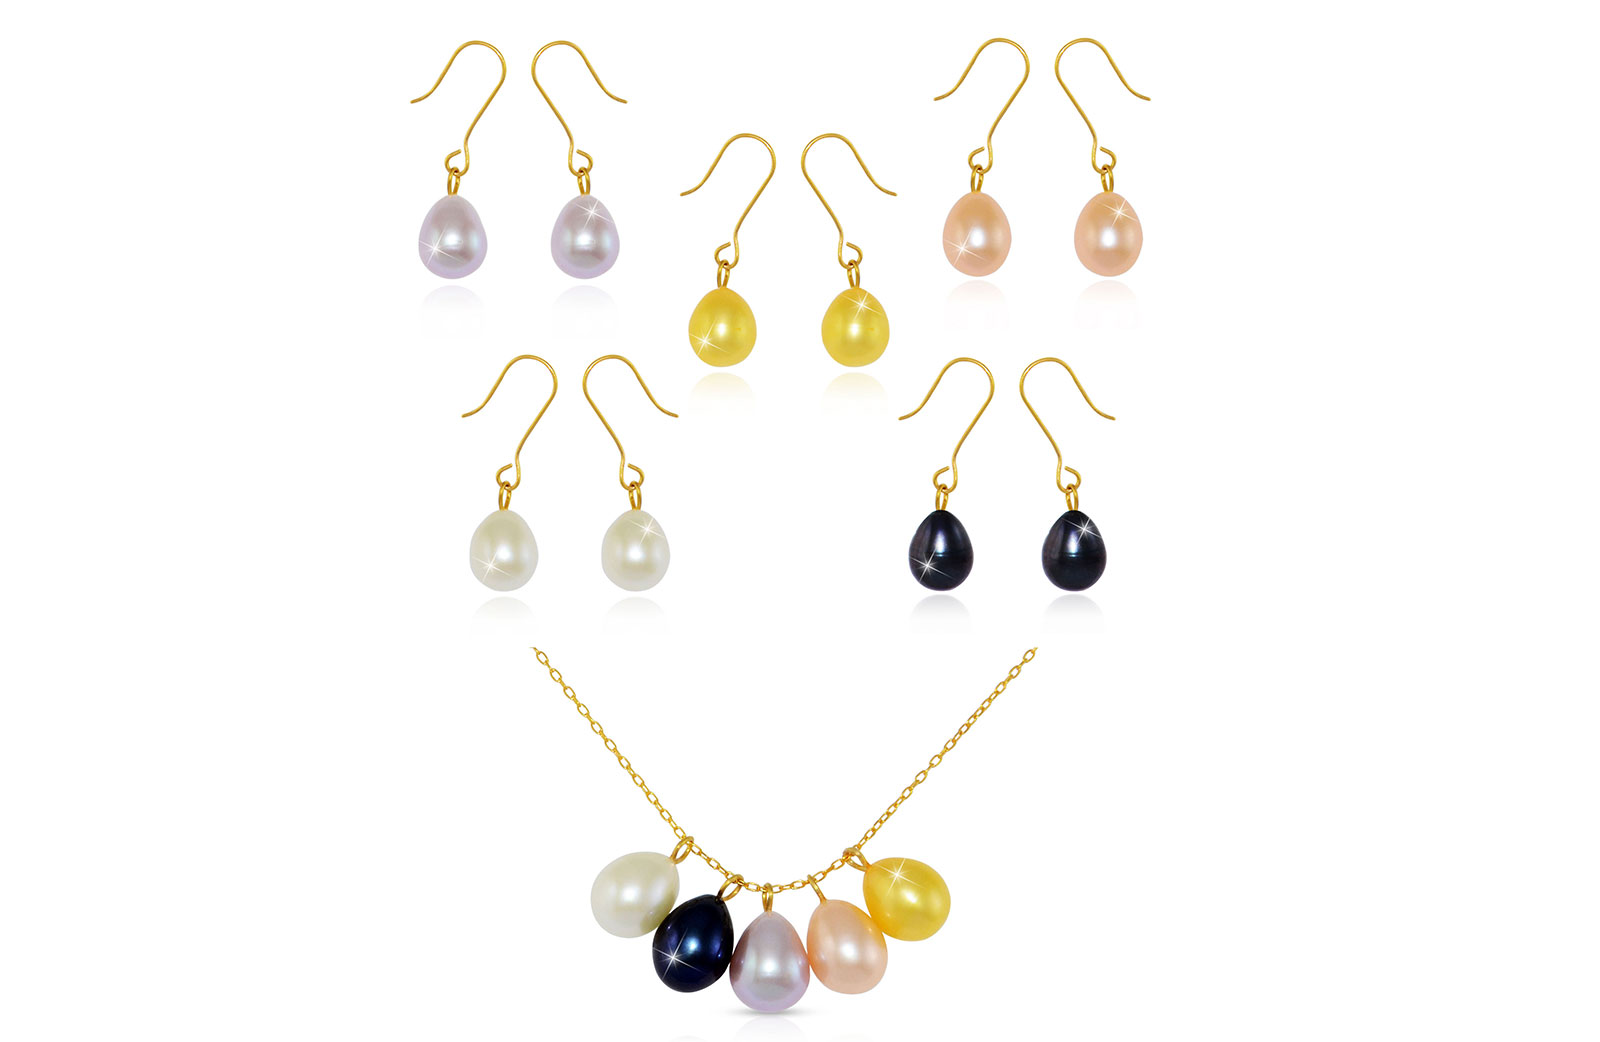 Vera Perla 5 in 1 18K Gold Genuine Pearls 5 Pendants and Earrings and 1 Chain